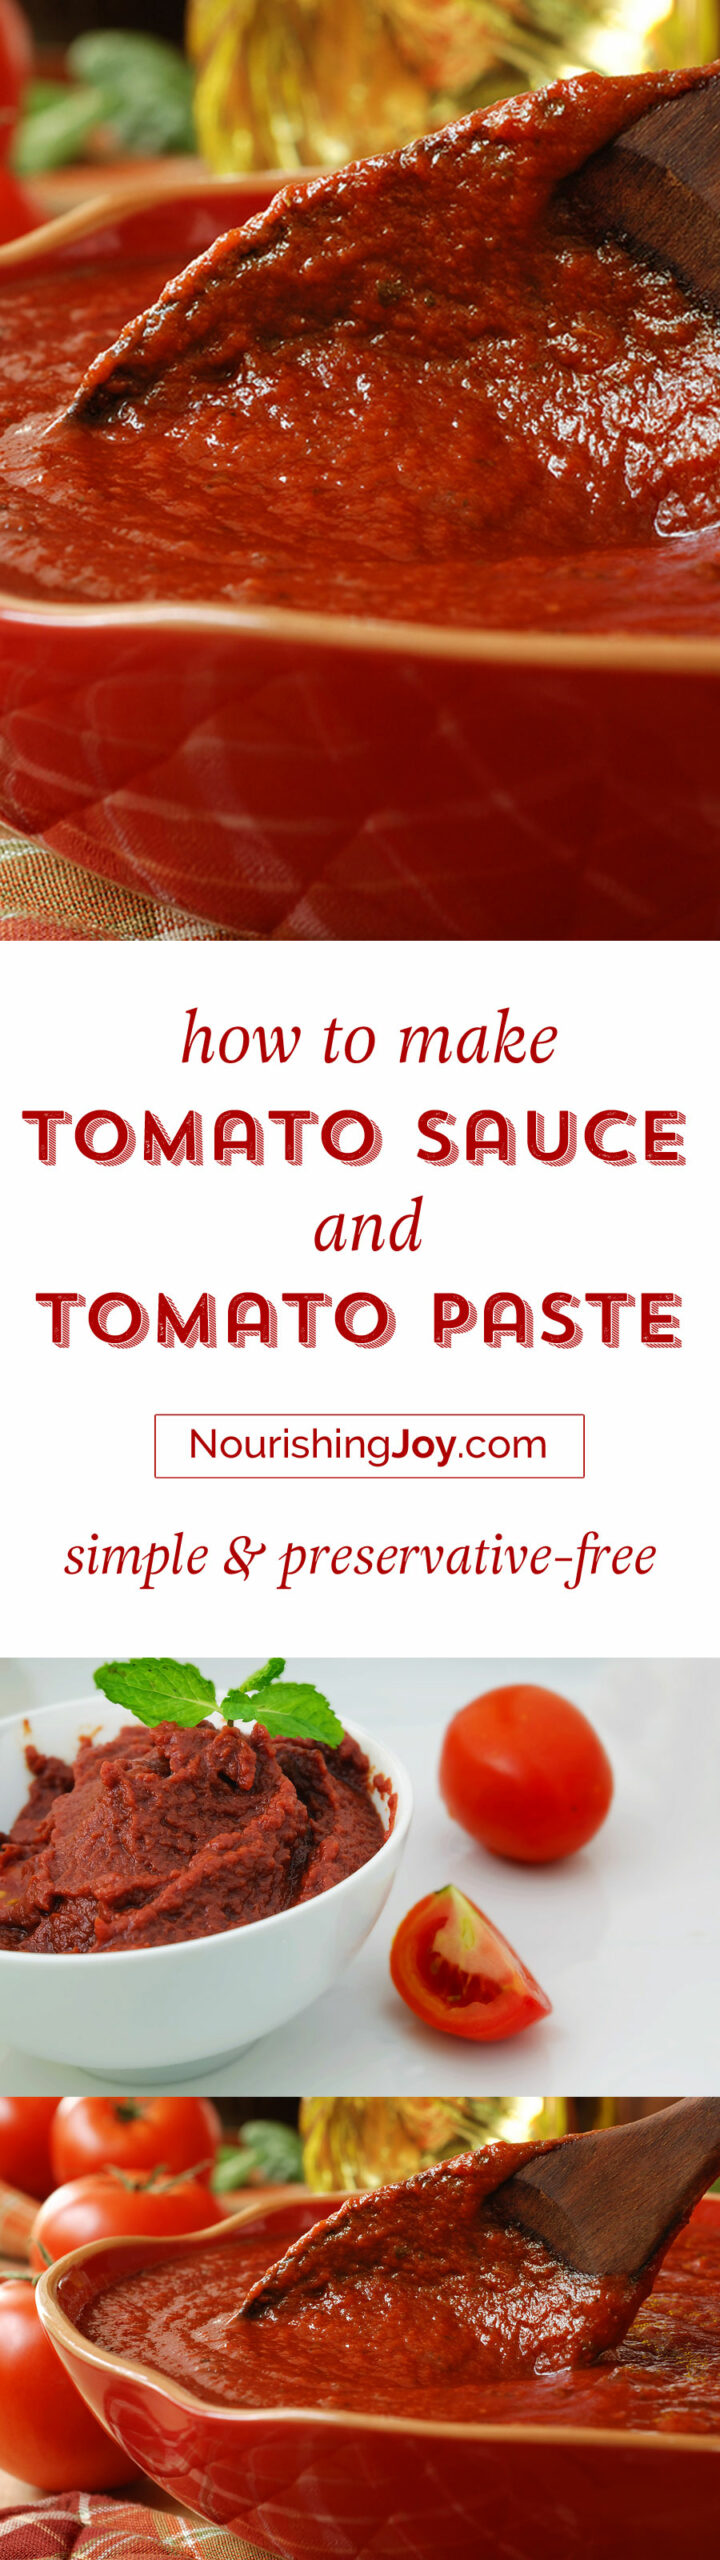 Knowing how to make homemade tomato sauce and how to make tomato paste can make your life so much easier during tomato season. And the fresh taste is unparalleled!